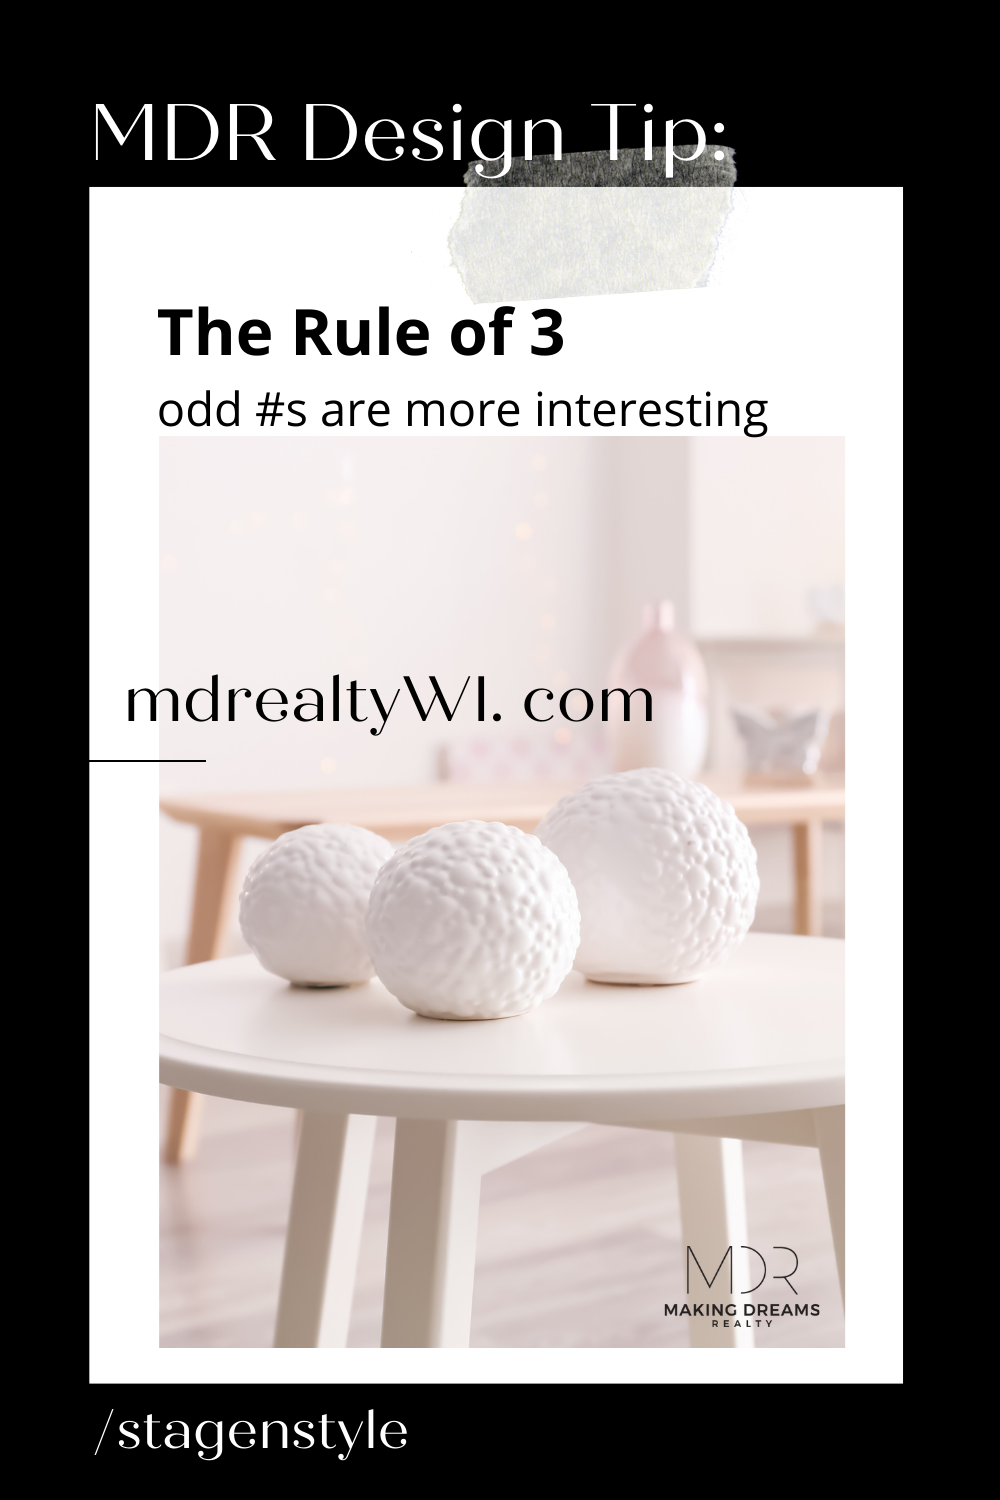 MDR Quick Design Tip: The Rule of 3